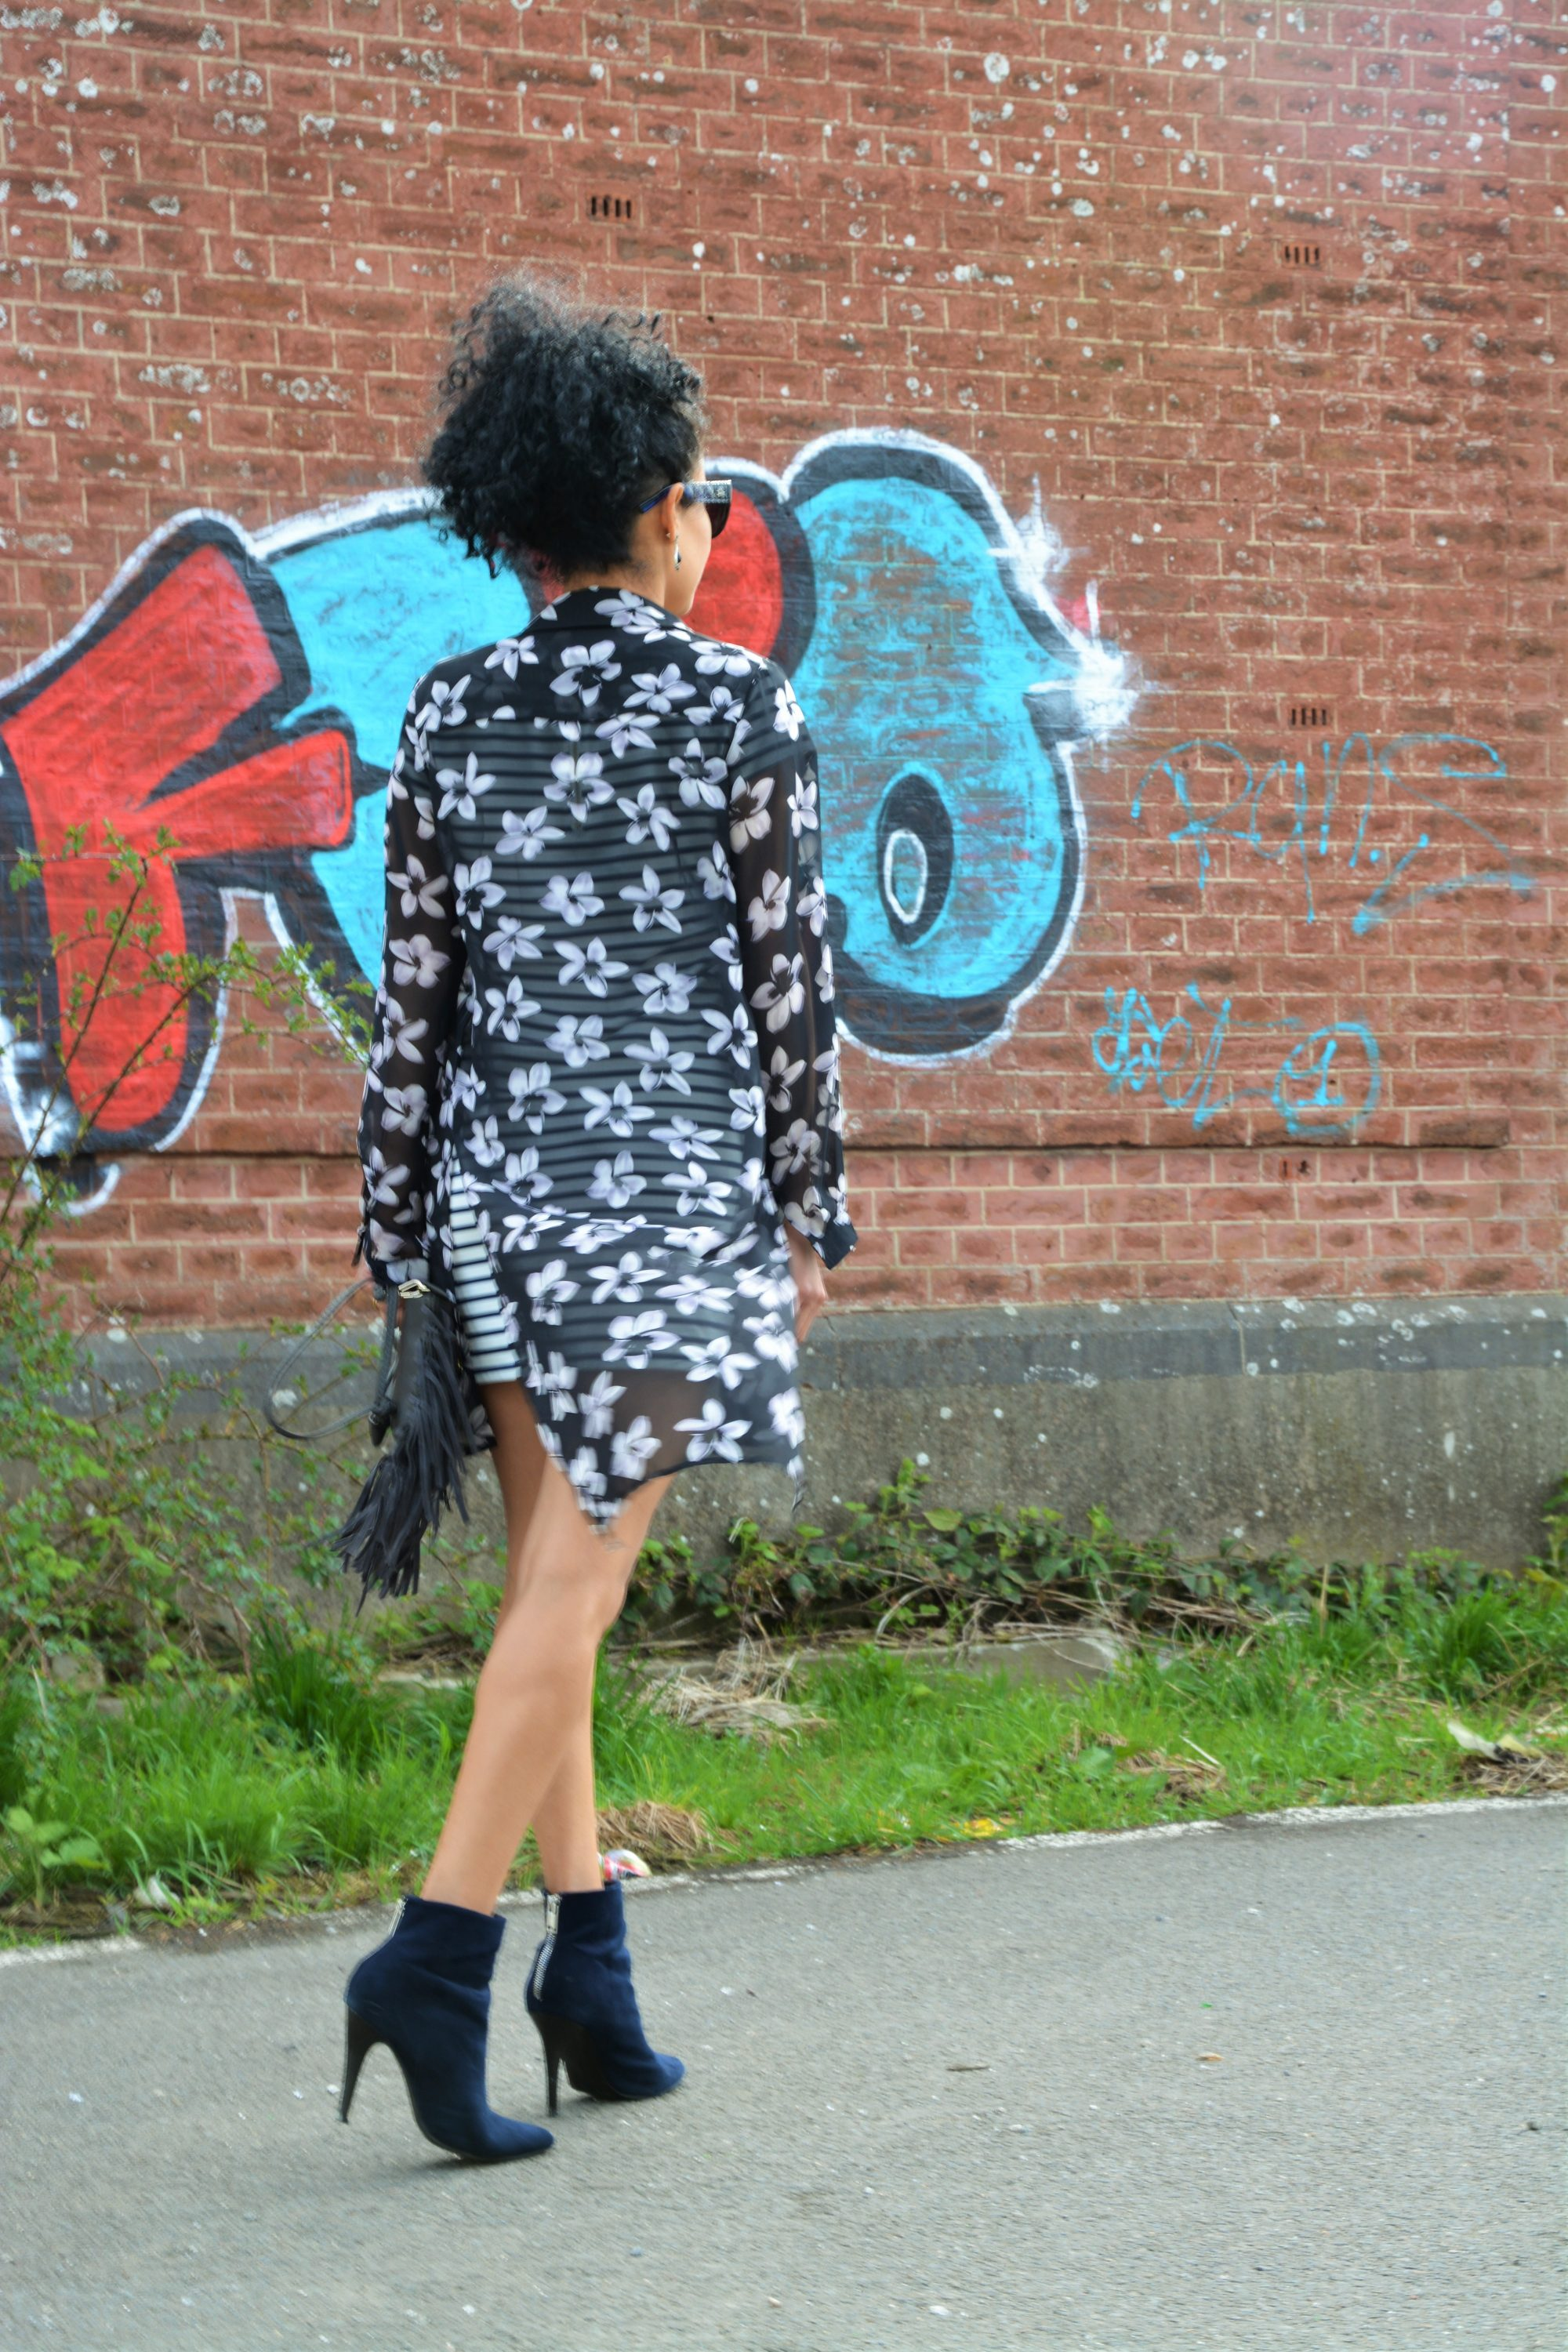 octavios post